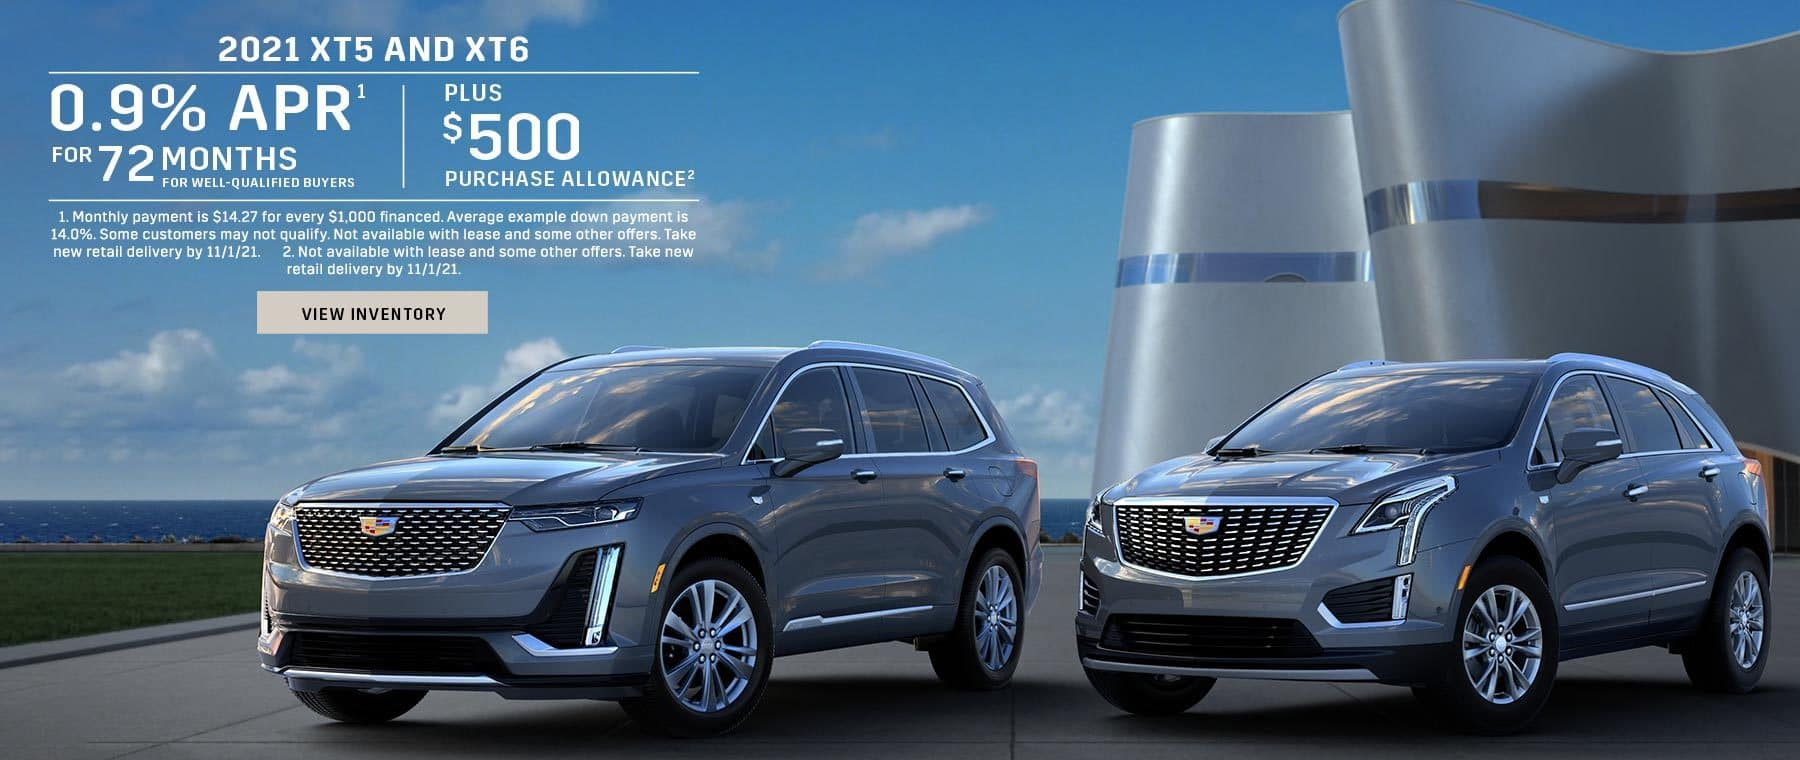 2021 XT5 and XT6. 0.9% APR for 72 months for well-qualified buyers. Plus $500 purchase allowance.